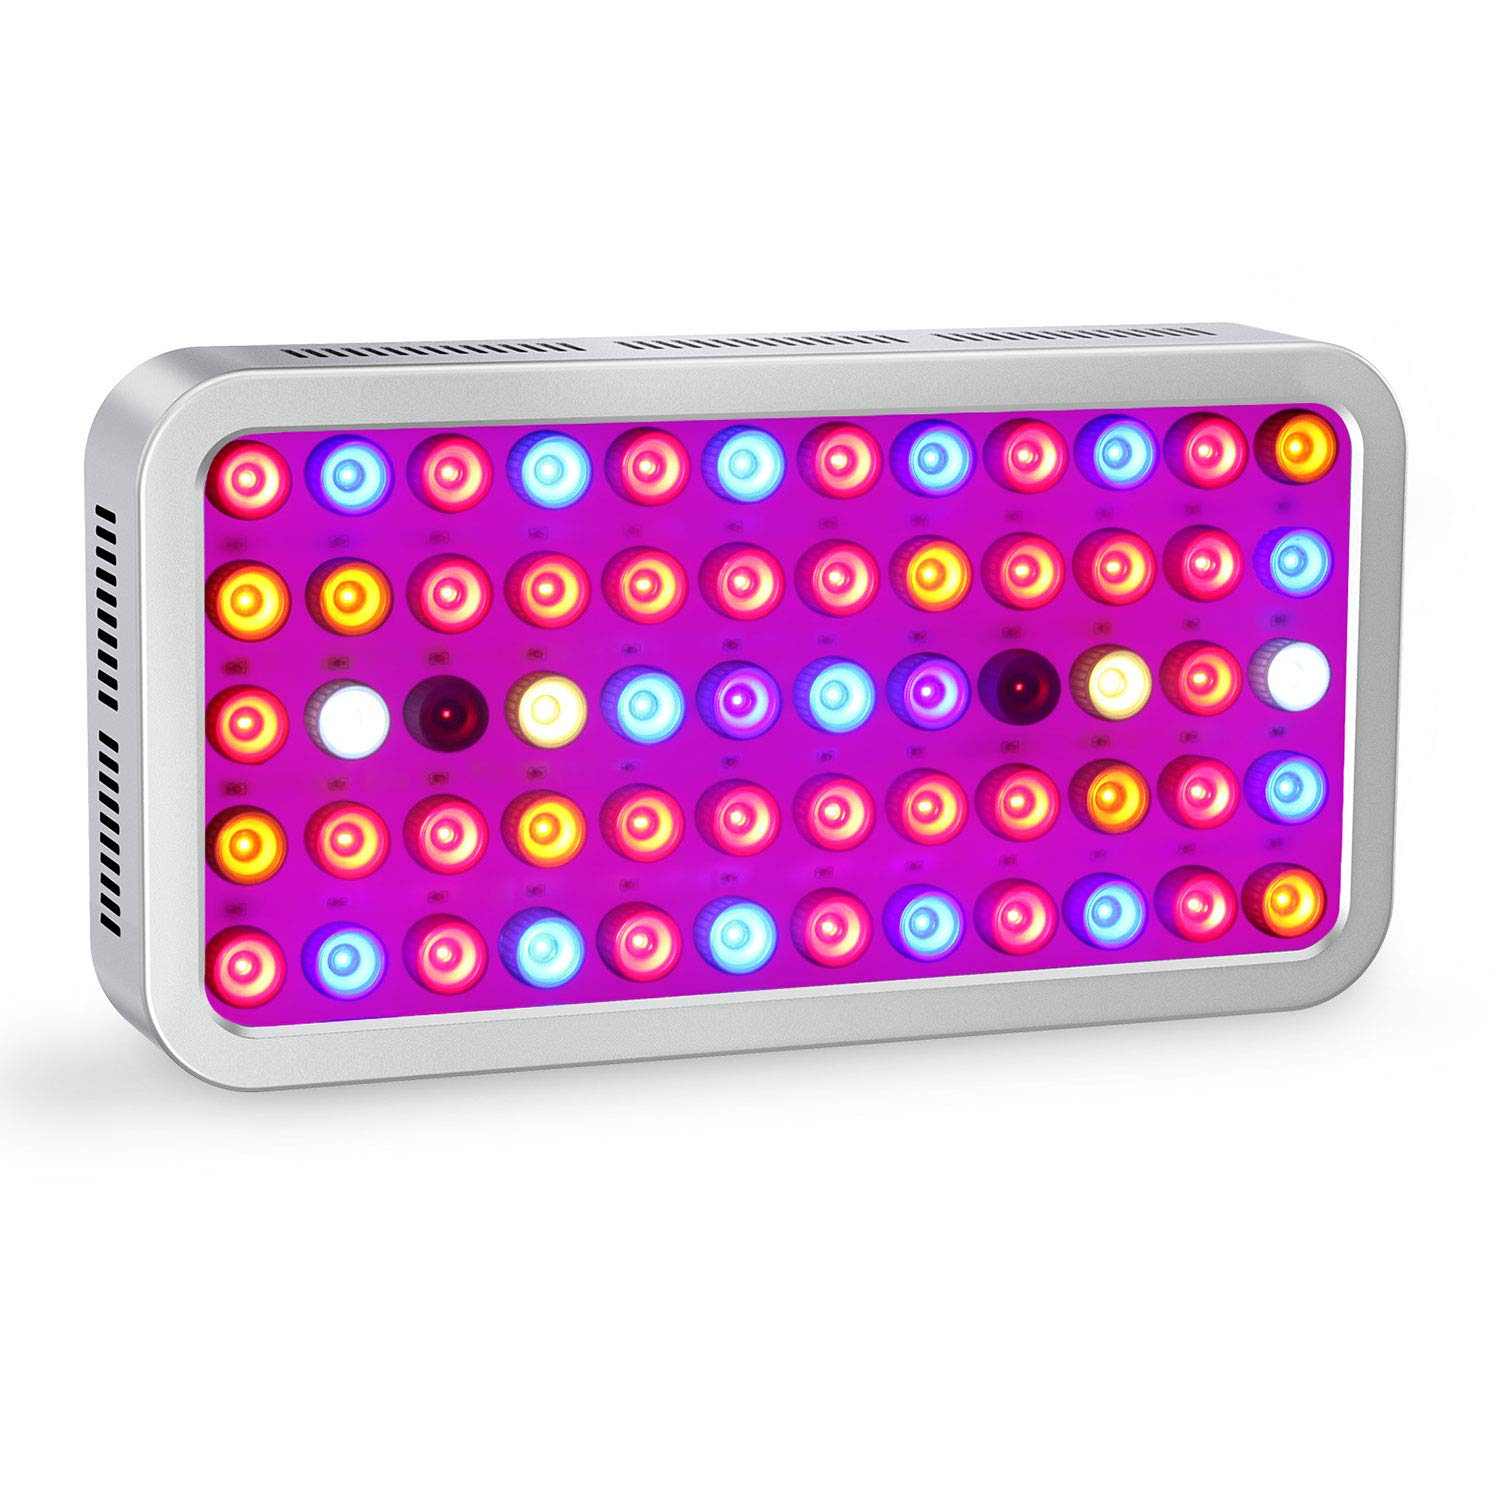 Roleadro Dimmable LED Grow Light 600W Led Plant Grow Lamp Led Hydroponic Lights with VEG&BLOOM Channels for Grow Tent,Greenhouse,Hydroponic Plants Growth